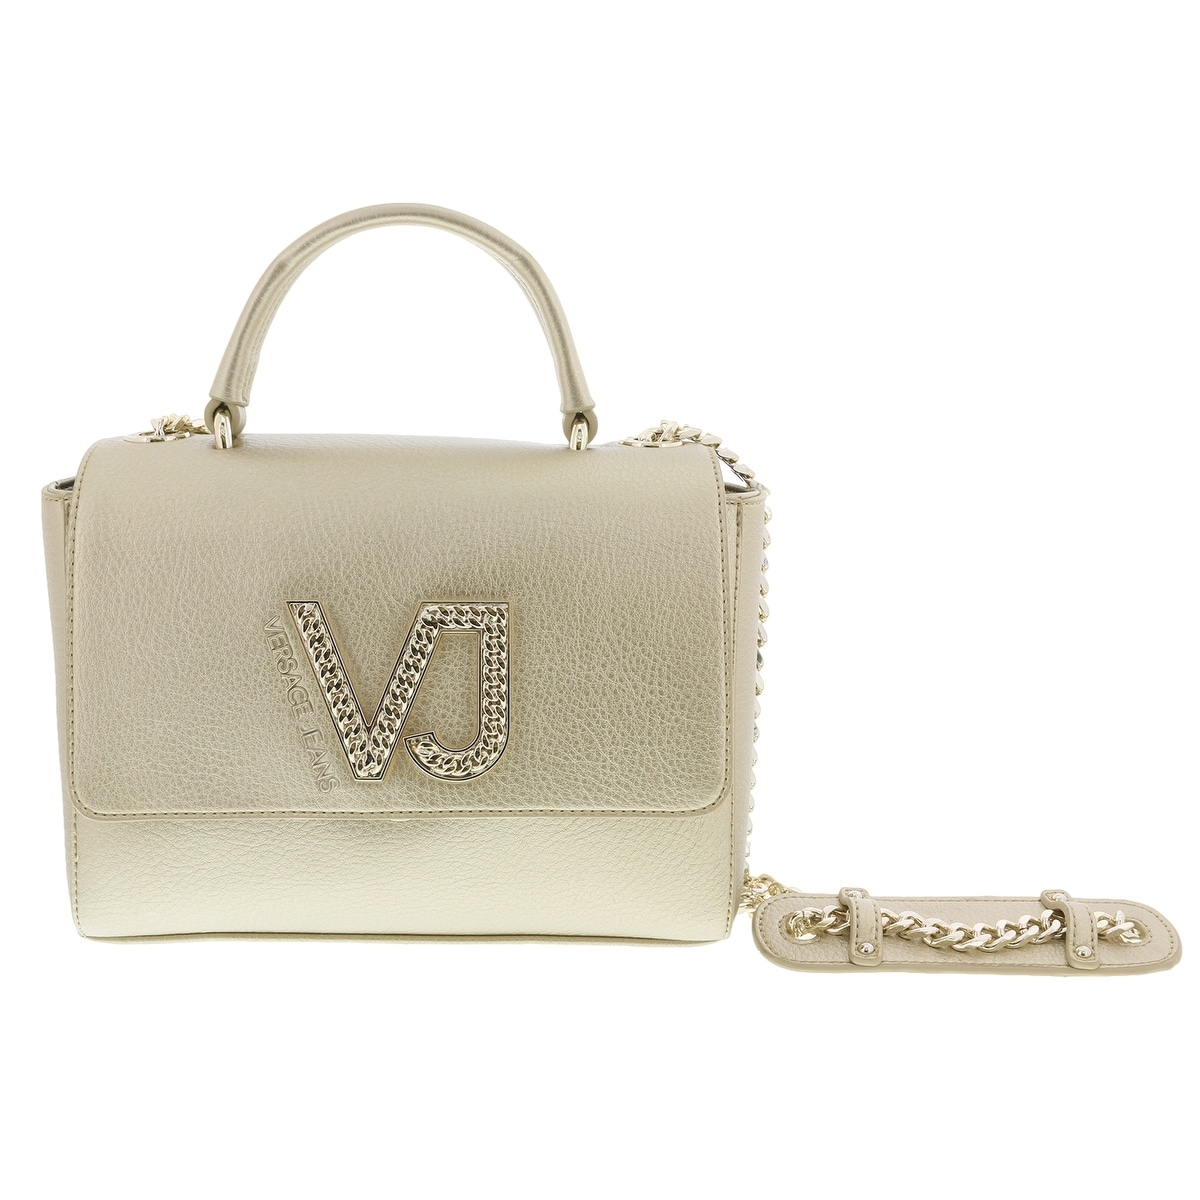 8054a32fae Shop Versace EE1VRBBC6 Gold Top Handle Bag - 9-7.5-4.5 - Free Shipping  Today - Overstock - 20223878